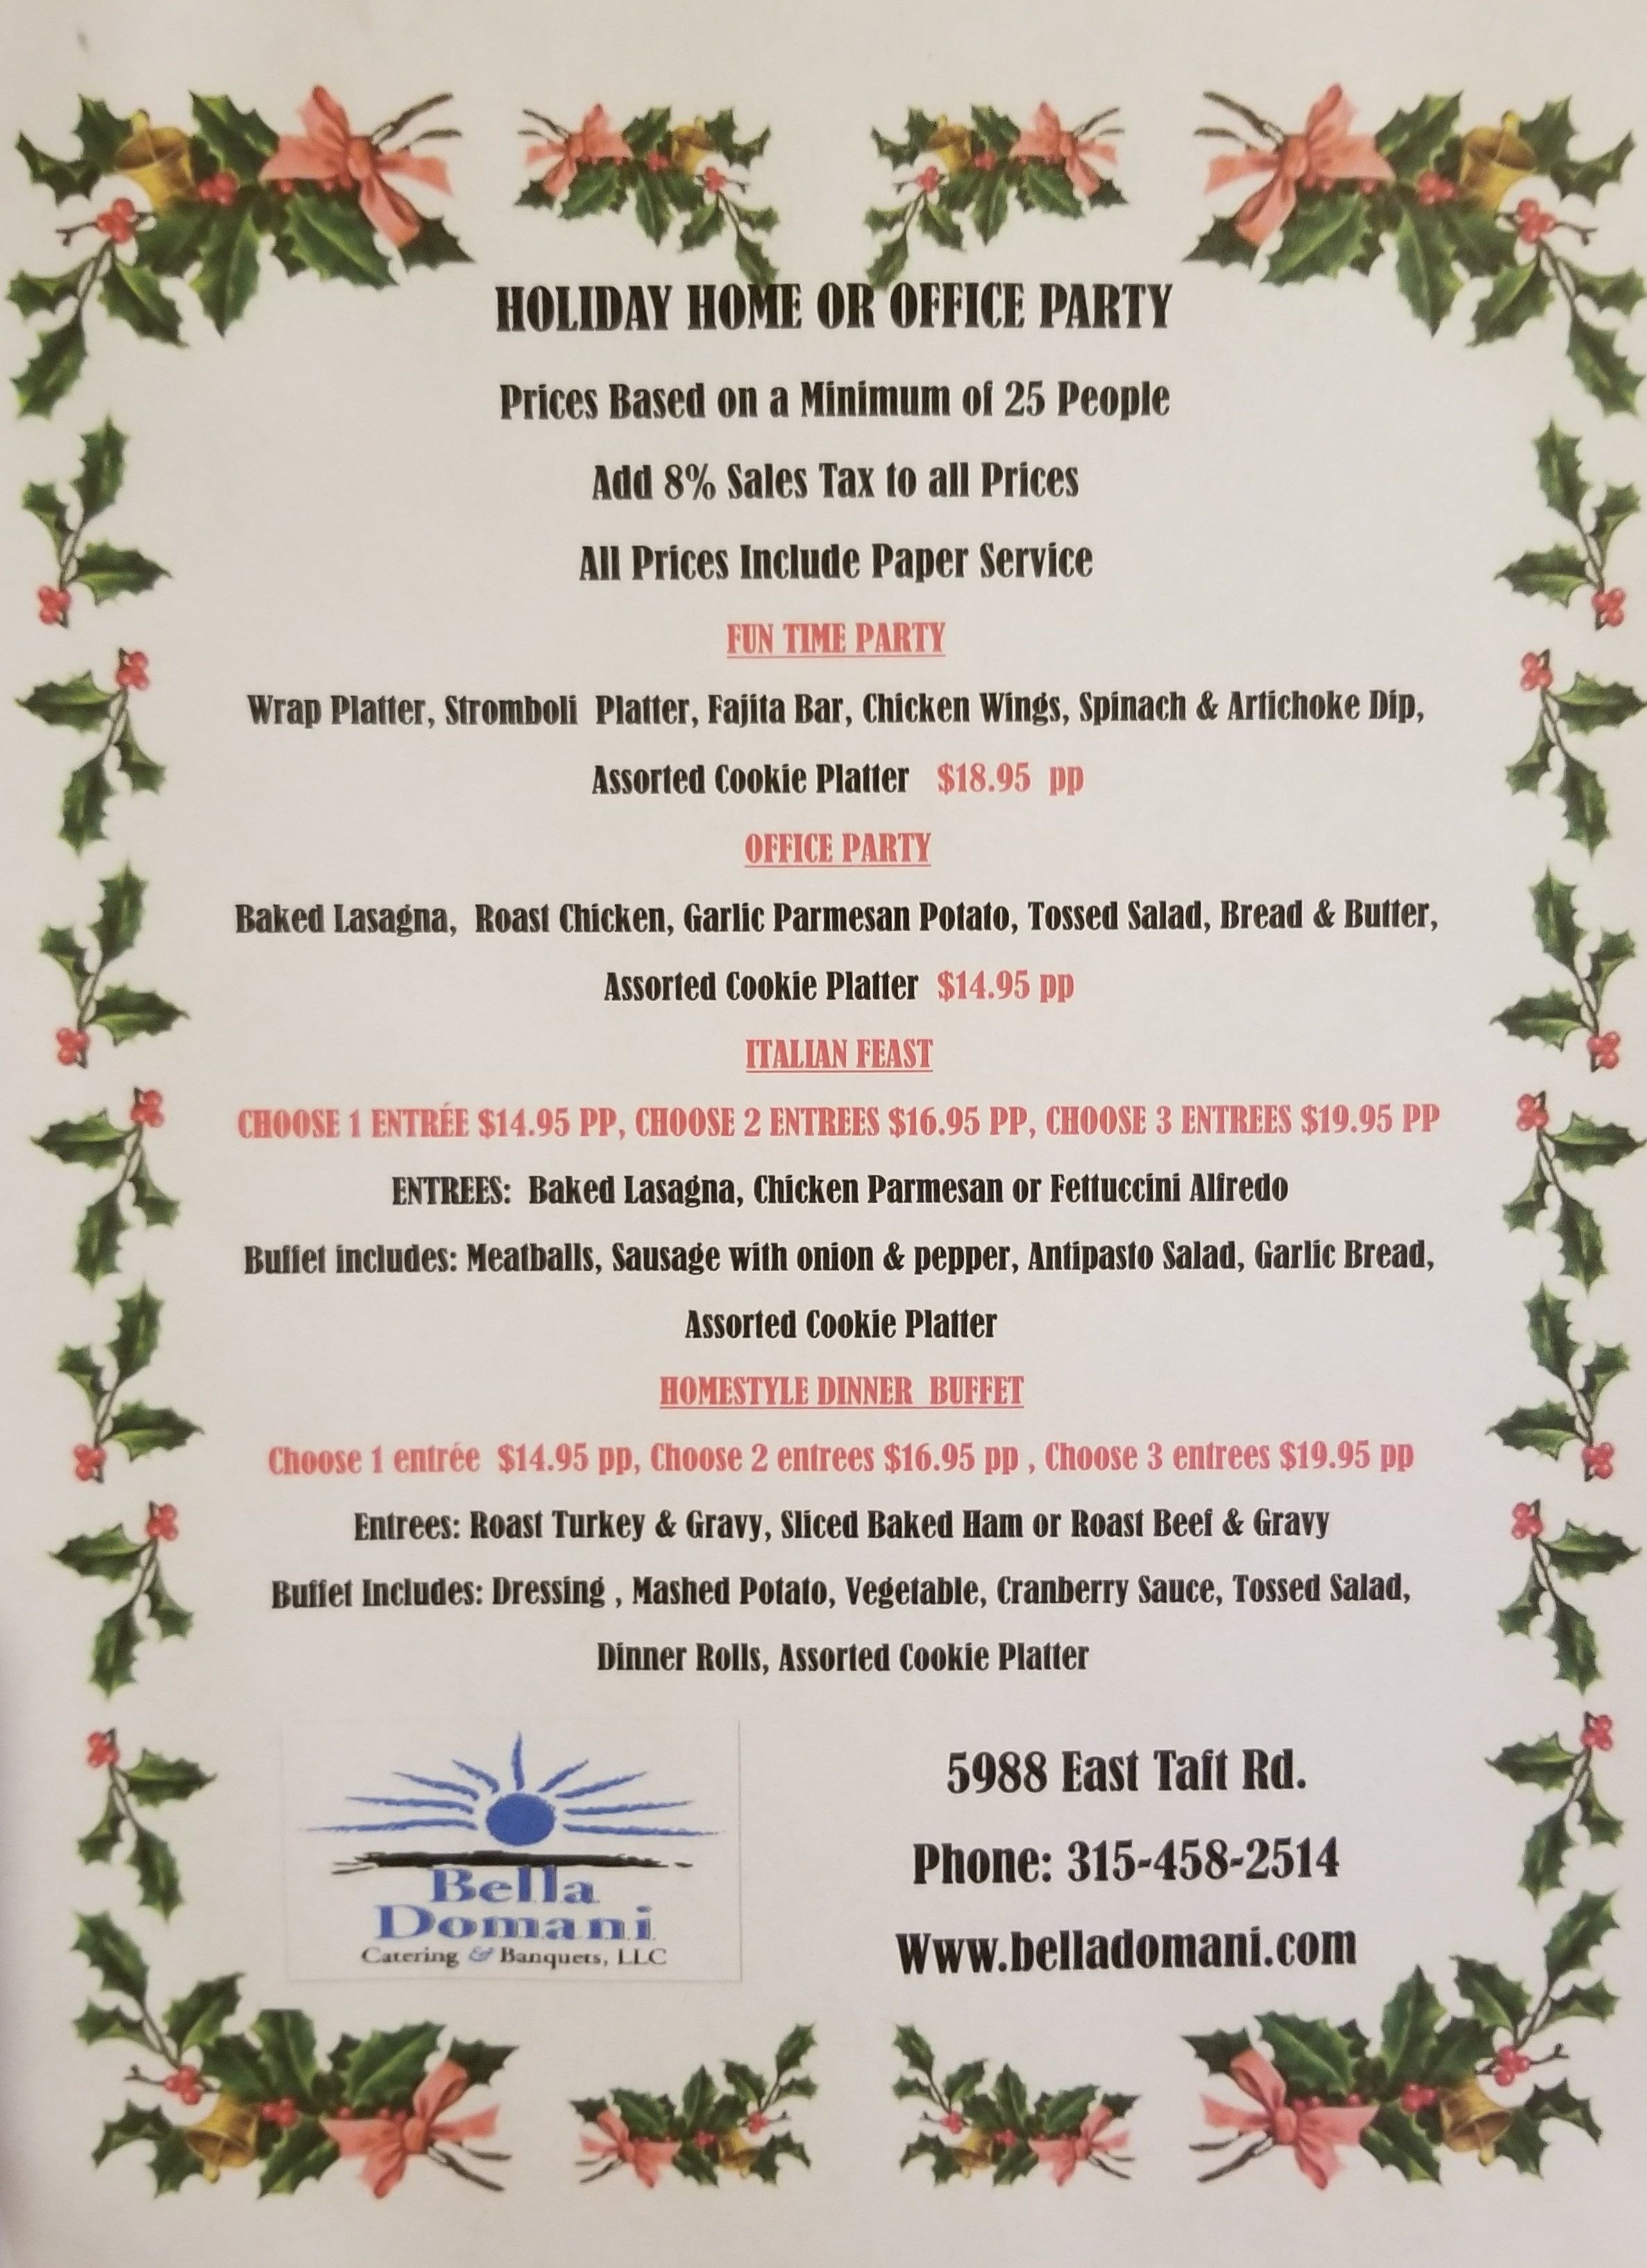 HOLIDAY HOME OR OFFICE PARTY.  Price Based on a Minimum of 25 People. Add 8% Sales Tax to all Prices.  All Prices Include Paper Service.  FUN TIME PARTY.  Wrap Platter, Stromboli Platter, Fajita Bar, Chicken Wings, Spinach and Artichoke Dip, Assorted Cookie Platter  $18.95 pp  OFFICE PARTY.  Baked Lasagna, Roast Chicken, Garlic Parmesan Potato, Tossed Salad, Bread & Butter, Assorted Cookie Platter.  $14.95 per person.  ITALIAN FEAST.  Choose 1 Entree - $14.95 per person , Choose 2 Entrees $16.95 per person , Choose 3 Entrees $19.95 per person. ENTREES: Baked Lasagna, Chicken Parmesan, or Fettucini Alfredo. Buffet Includes: Meatballs, Sausage with onion& pepper, Antipasto Salad, Garlic Bread, Assorted Cookie Platter.   HOMESTYLE DINNER BUFFET.  Choose 1 Entree : $14.95 per person, Choose 2 Entrees $16.95 per person, Choose 3 Entrees $19.95 per person. Entrees: Roast Turkey & Gravy, Sliced Baked Ham or Roast Beef & Gravy. Buffet Includes: Dressing, Mashed Potato, Vegetable, Cranberry Sauce, Tossed Salad, Dinner Rolls, Assorted Cookie Platter.